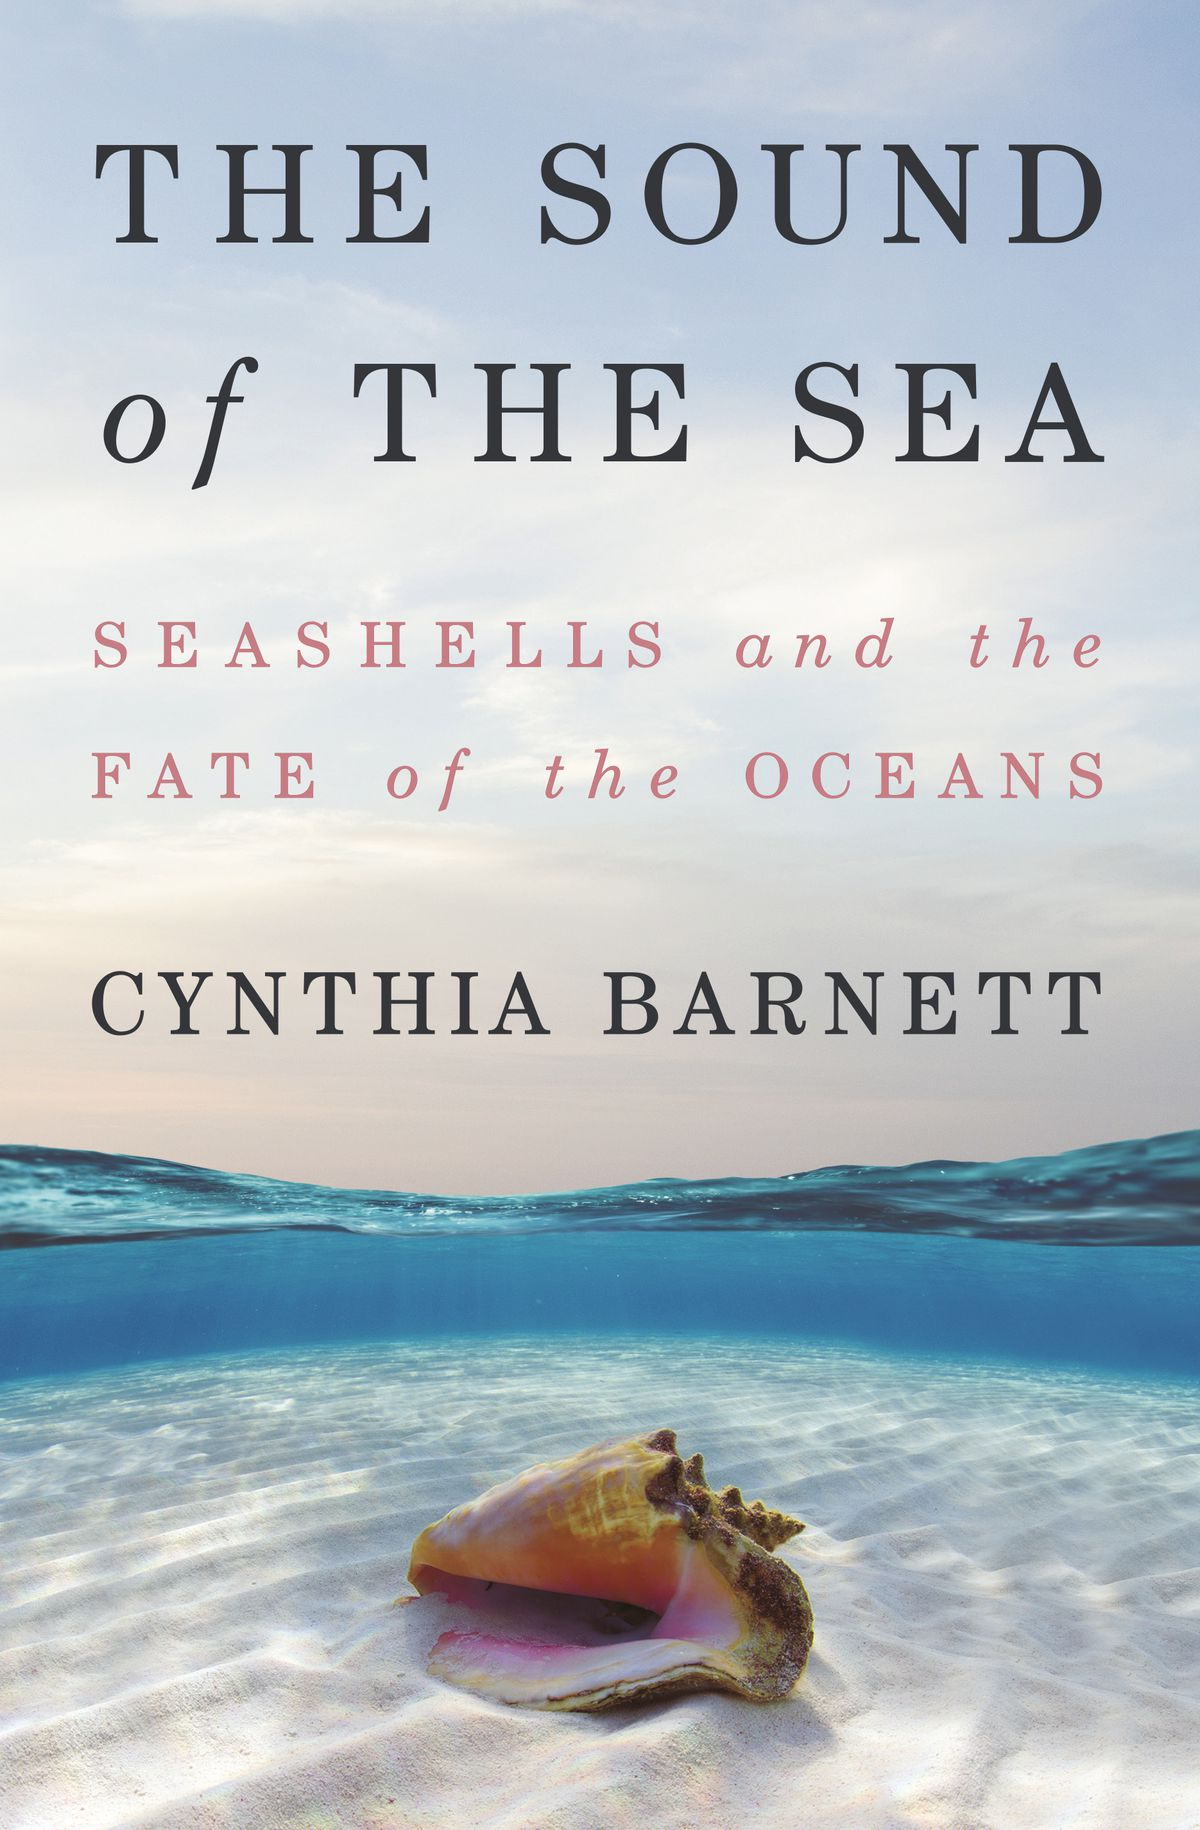 """The cover of the Cynthia Barnett book """"The Sound of the Sea: Seashells and the fate of the oceans."""""""